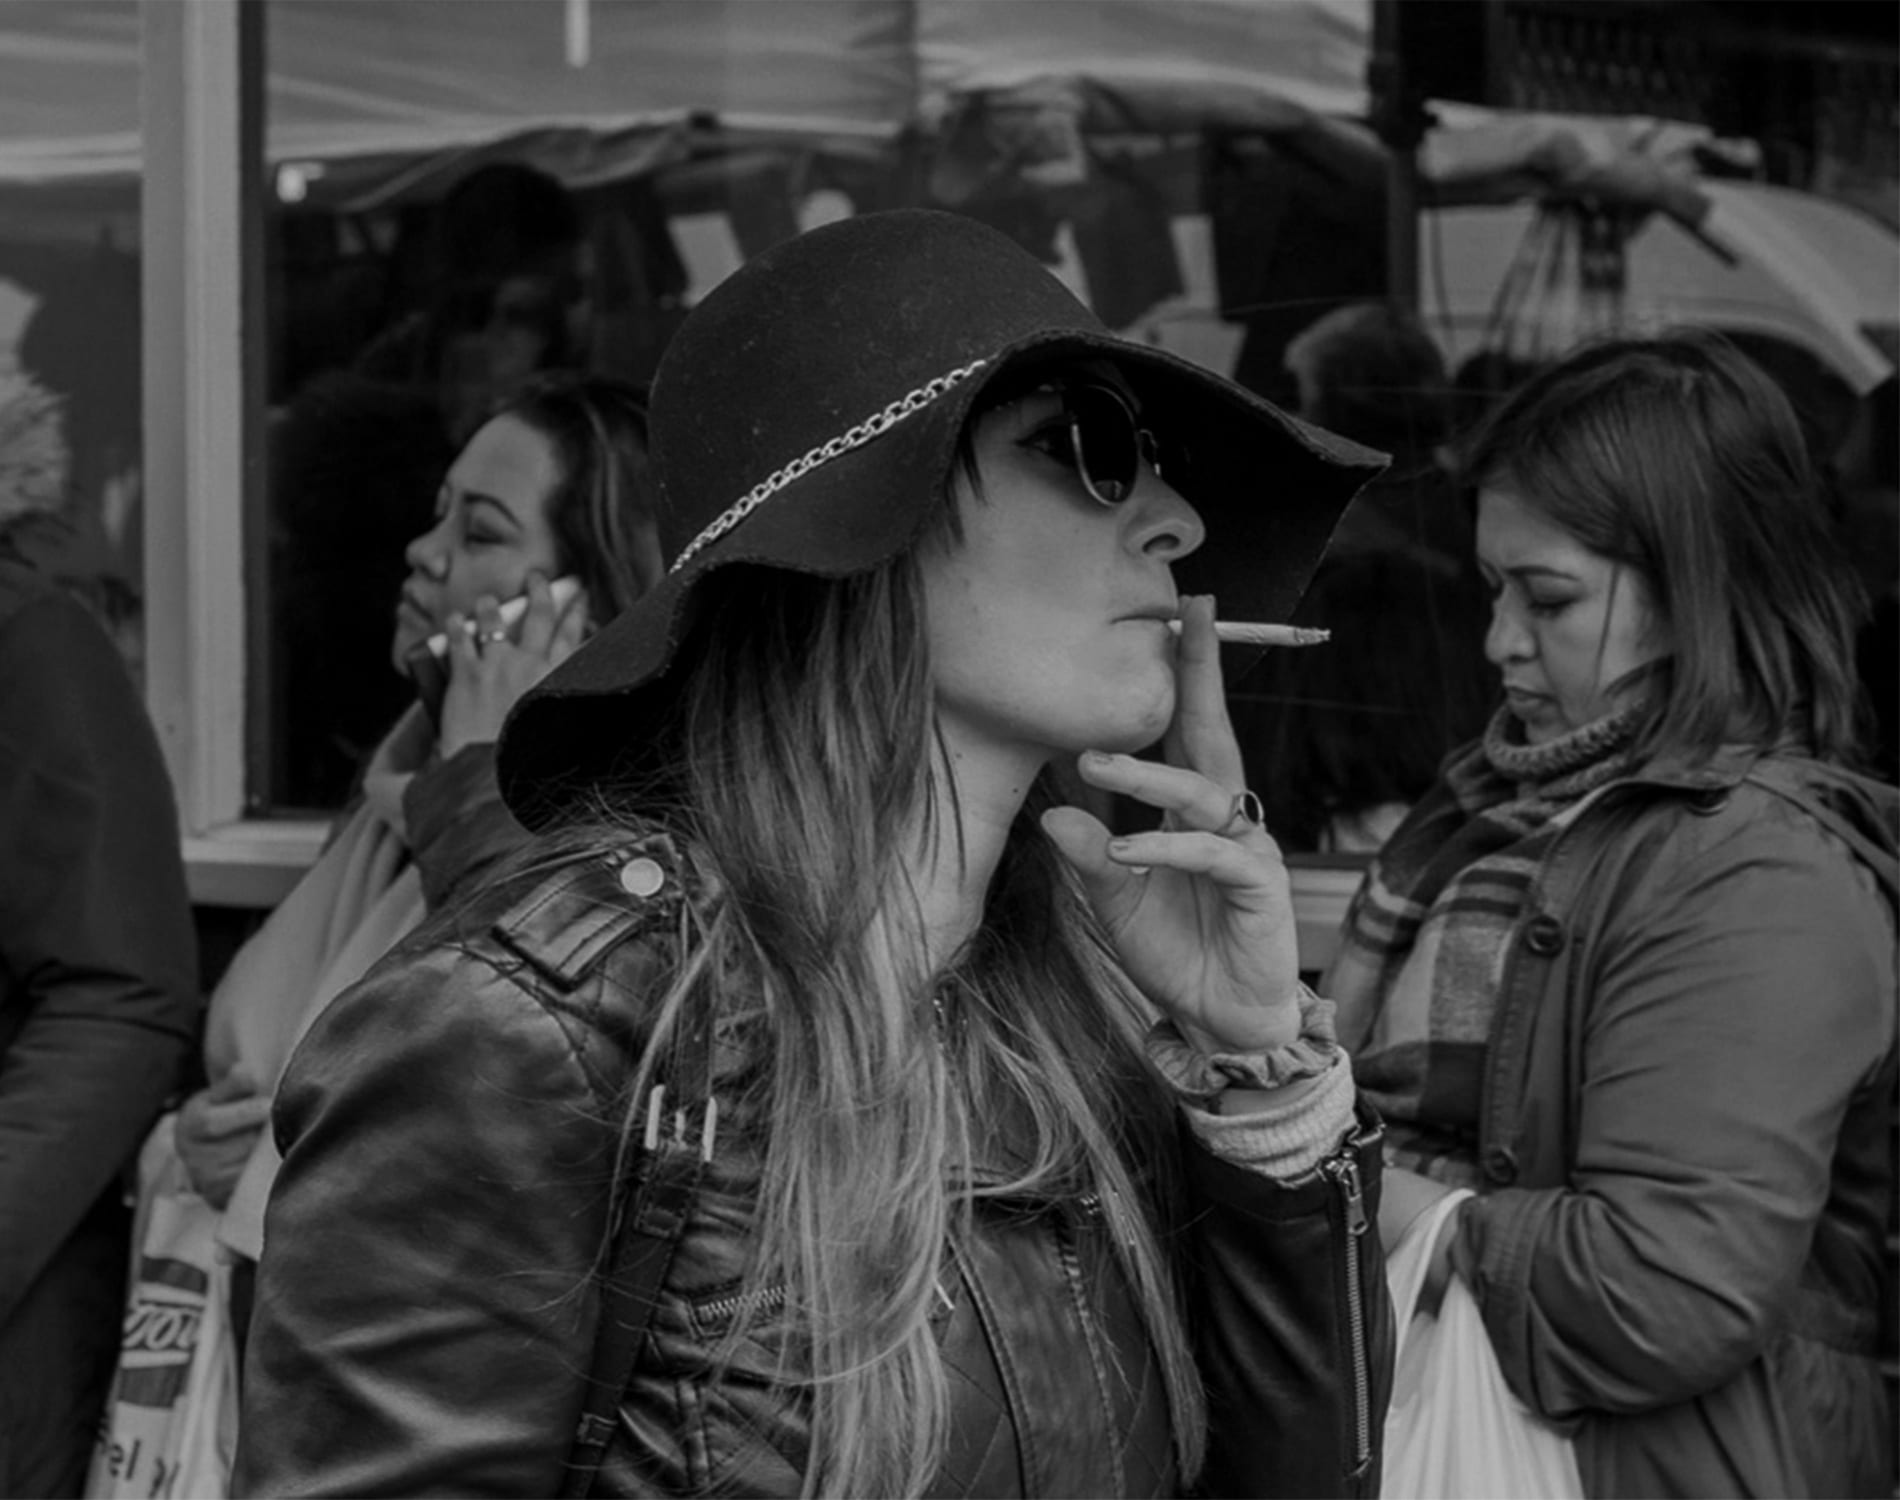 a woman in a floppy hat smokes as she walks down a busy street